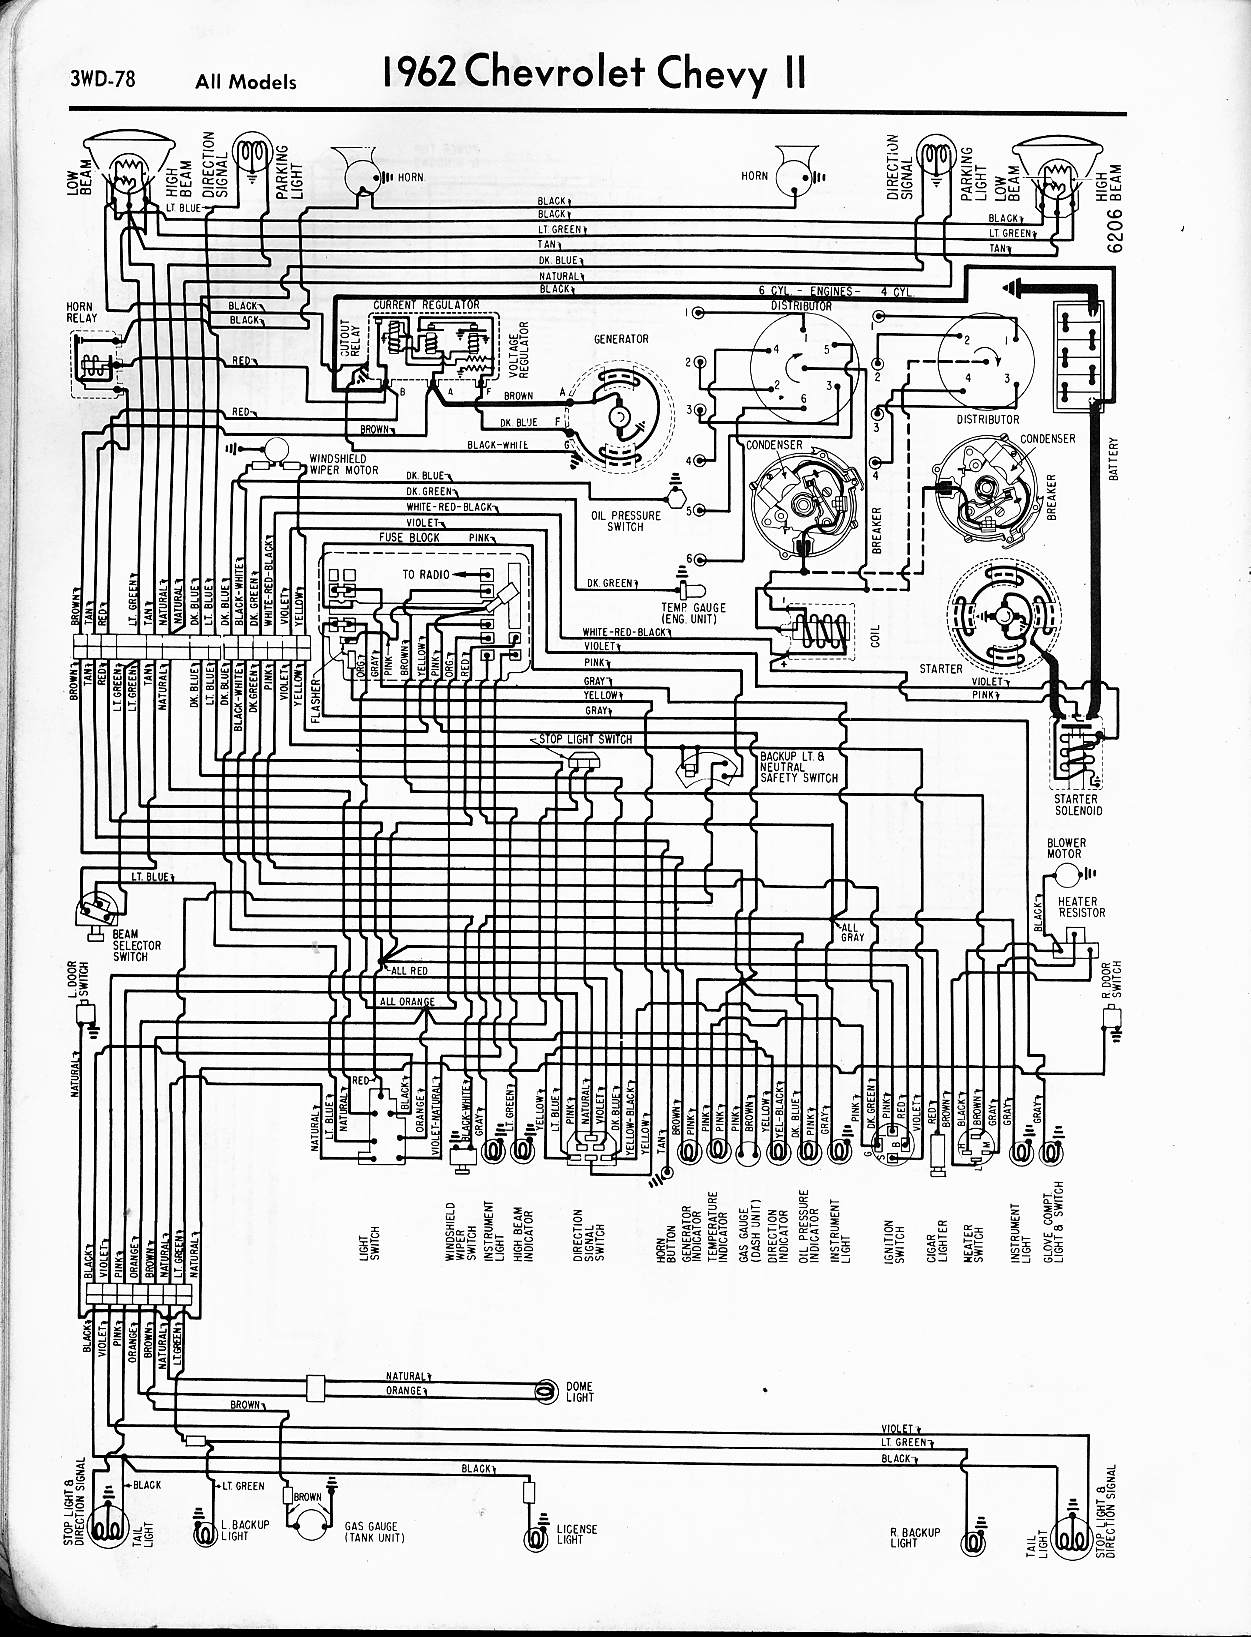 MWireChev62_3WD 078 1963 c10 pickup wiring diagram pdf chevy wiring diagrams \u2022 free 67 Chevy 2 Nova at edmiracle.co